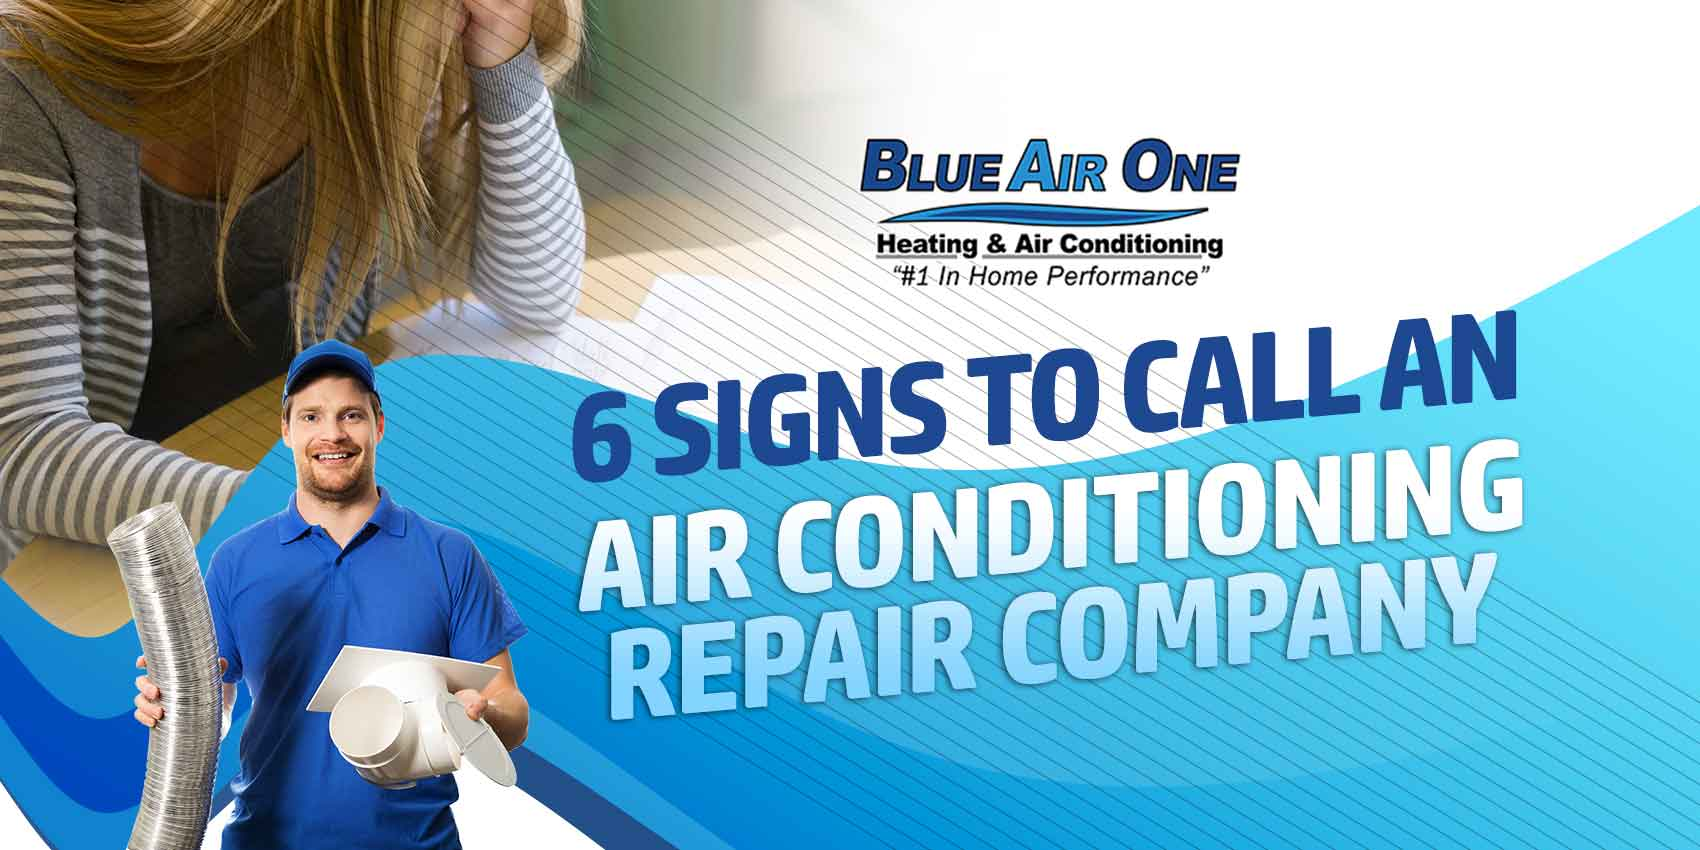 6 Signs to Call an Air Conditioning Repair Company